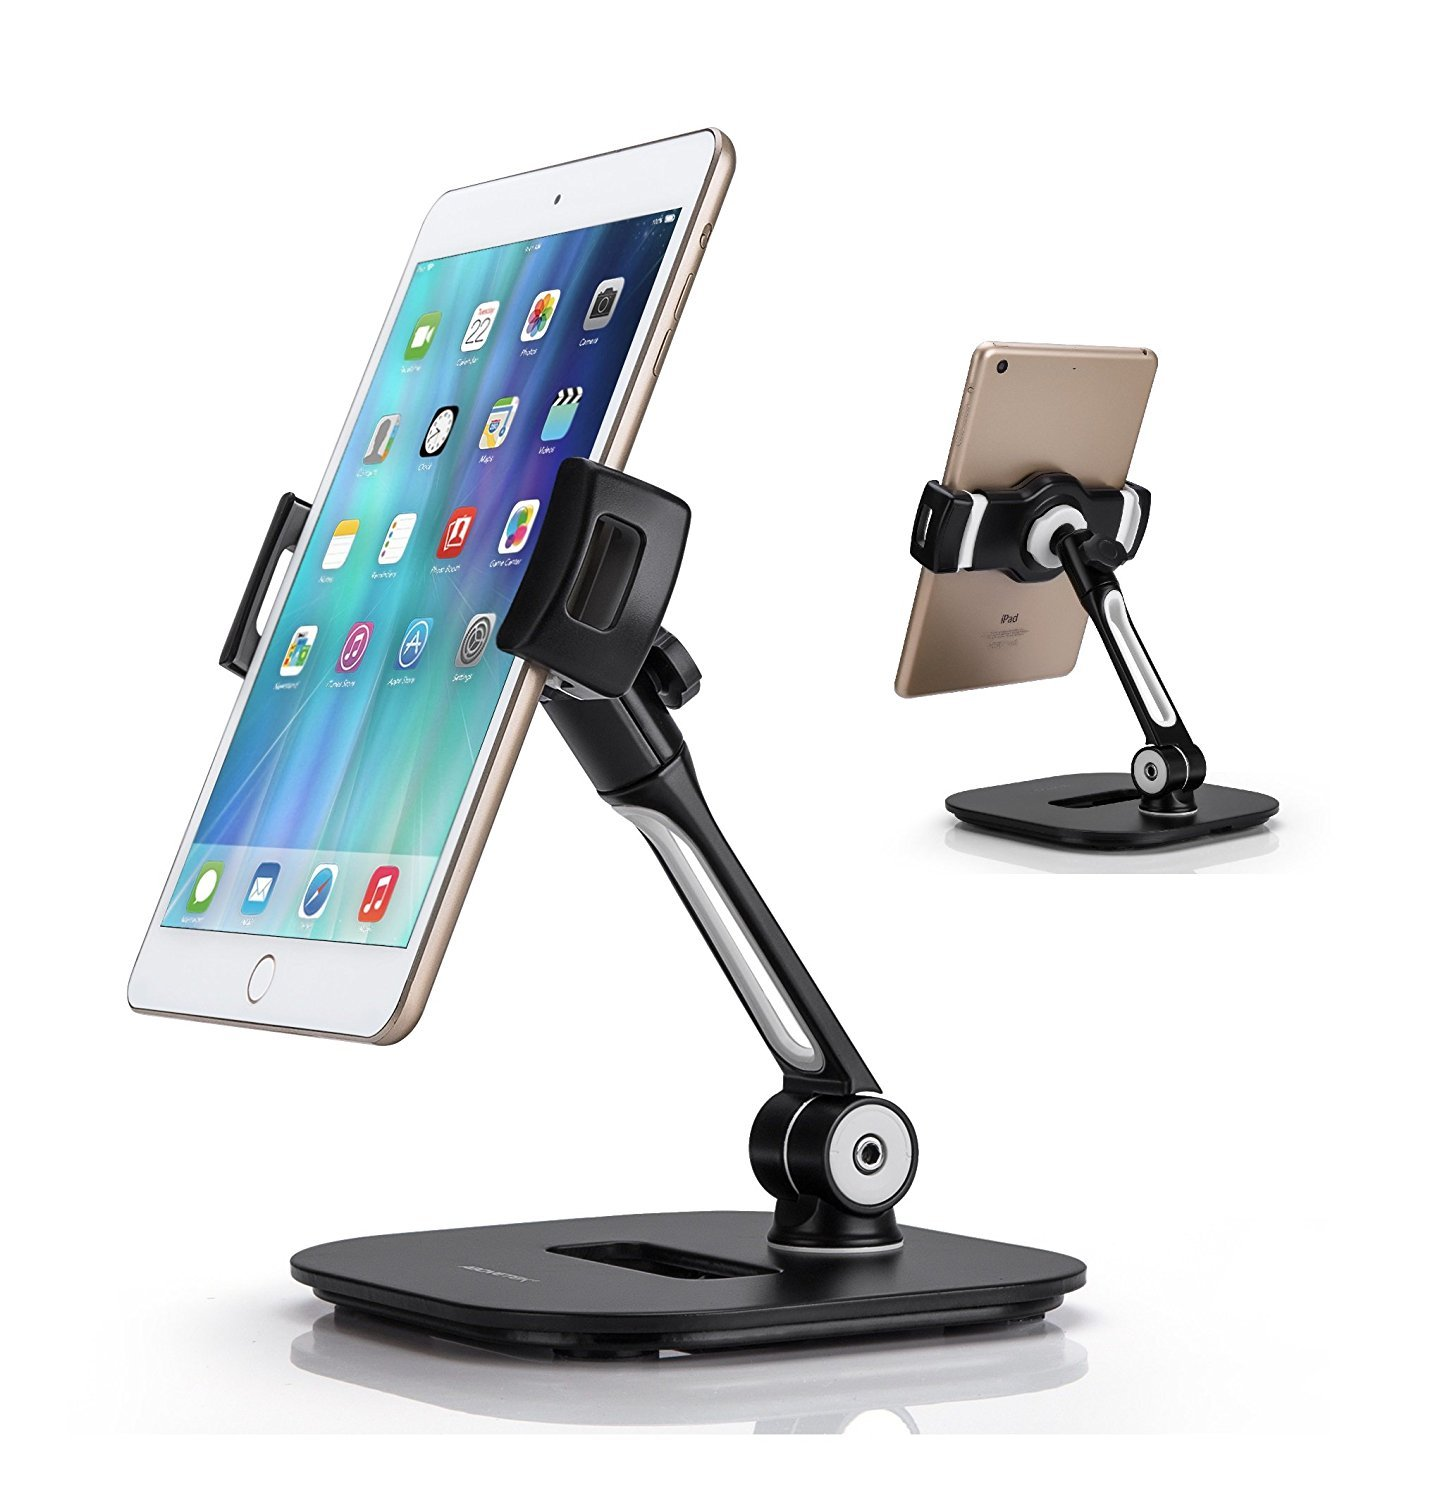 "AboveTEK Stylish Aluminum Tablet Stand, Cell Phone Stand, Folding 360° Swivel iPad iPhone Desk Mount Holder fits 4-11"" Tablets/Smartphones for Kitchen Bedside Office Table POS Kiosk Reception Showroom"